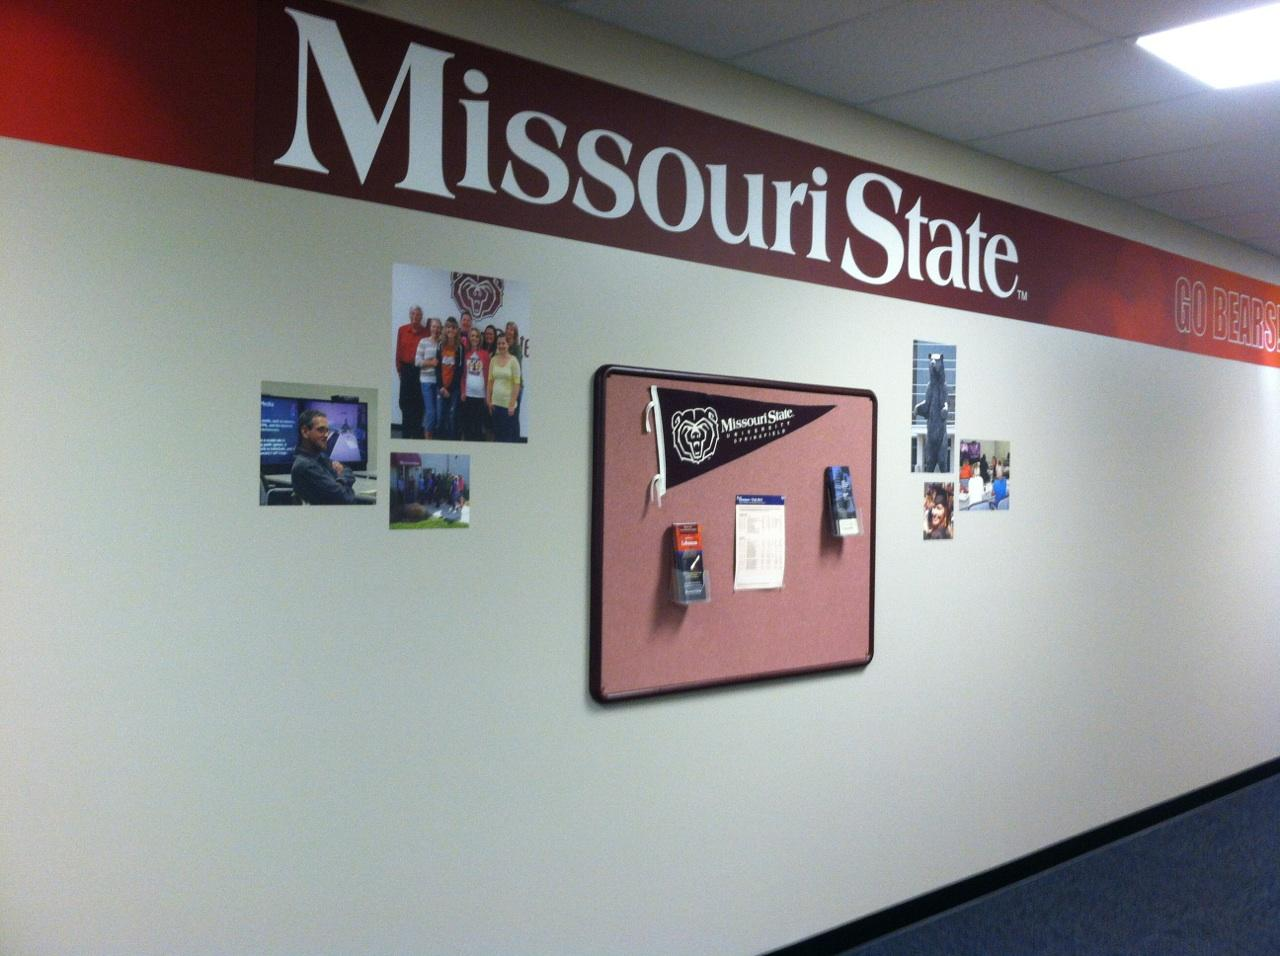 Missouri State Outreach – Lebanon has completed the move to the OTC Lebanon Center